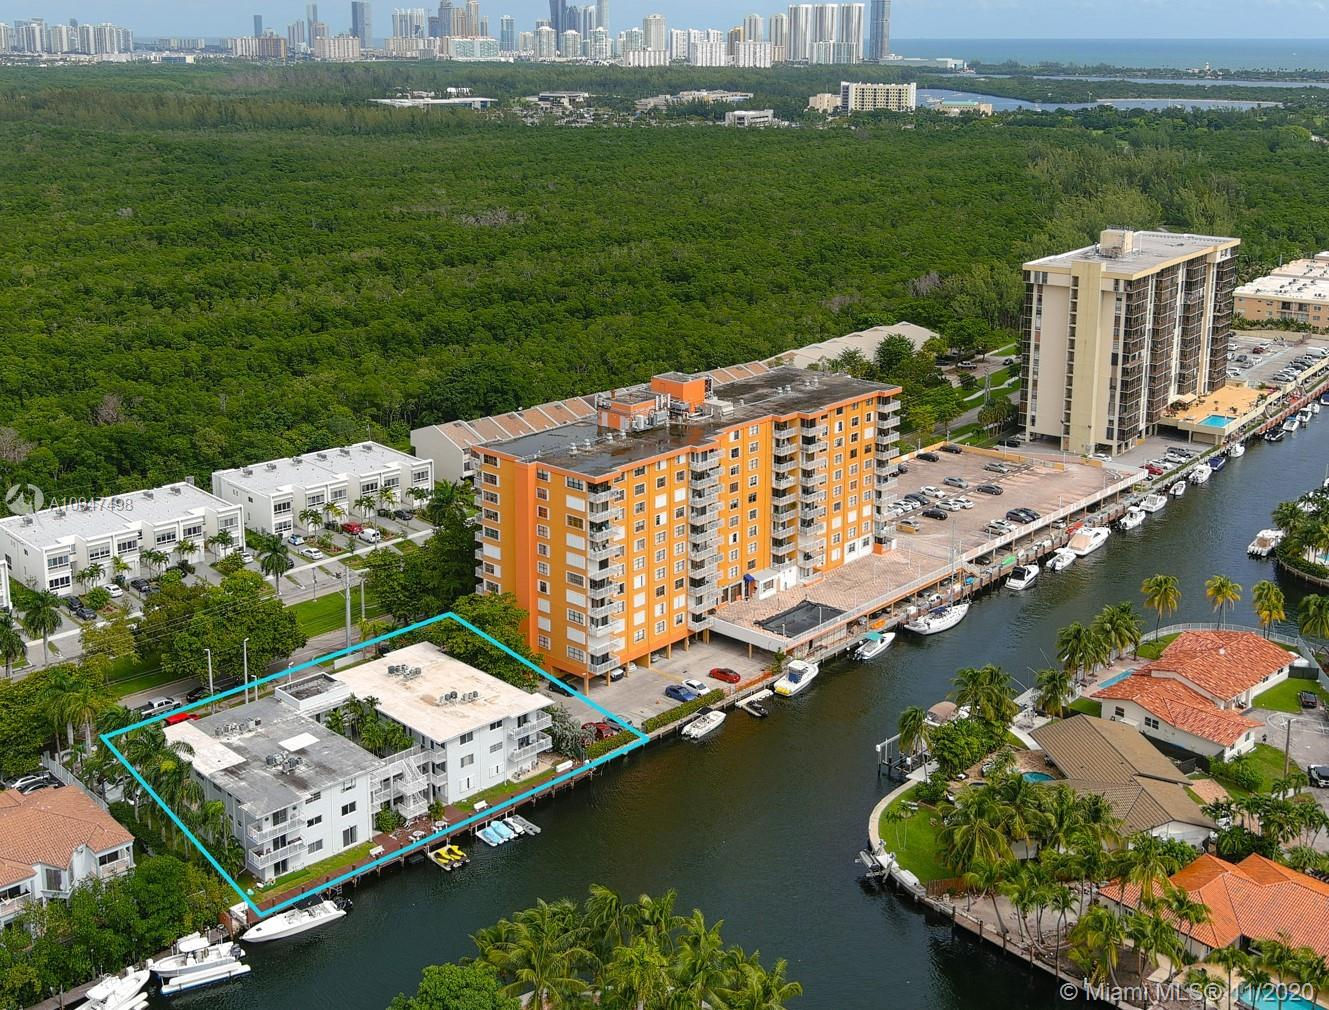 Beautiful remodeled waterfront condo, 750 sq ft and 31 ft dock included in this amazing price, with folios #06-2229-091-0250 for the condo and folio #06-2229-091-0320 for the dock.  Recently impact windows and doors were installed in this unit.  The open modern kitchen opens to the living space making everything flow. Master has a wraparaound balcony overlooking the canal and dock area. 